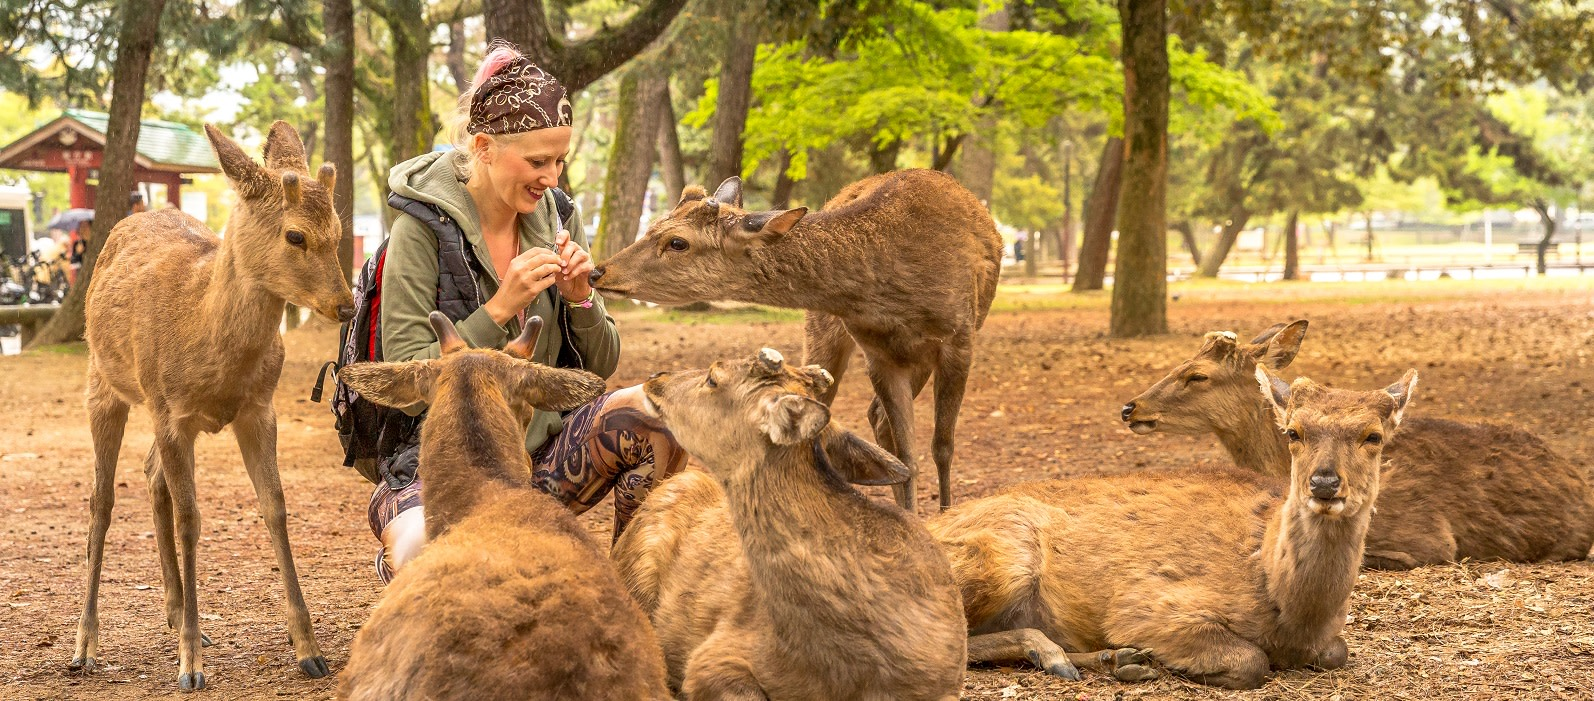 Smiling tourist woman surrounded by hungry deer in Nara town of Japan. Female traveler feeding wild animals on the grass park of Nara.Tourism in Japan concept.Unesco Heritage